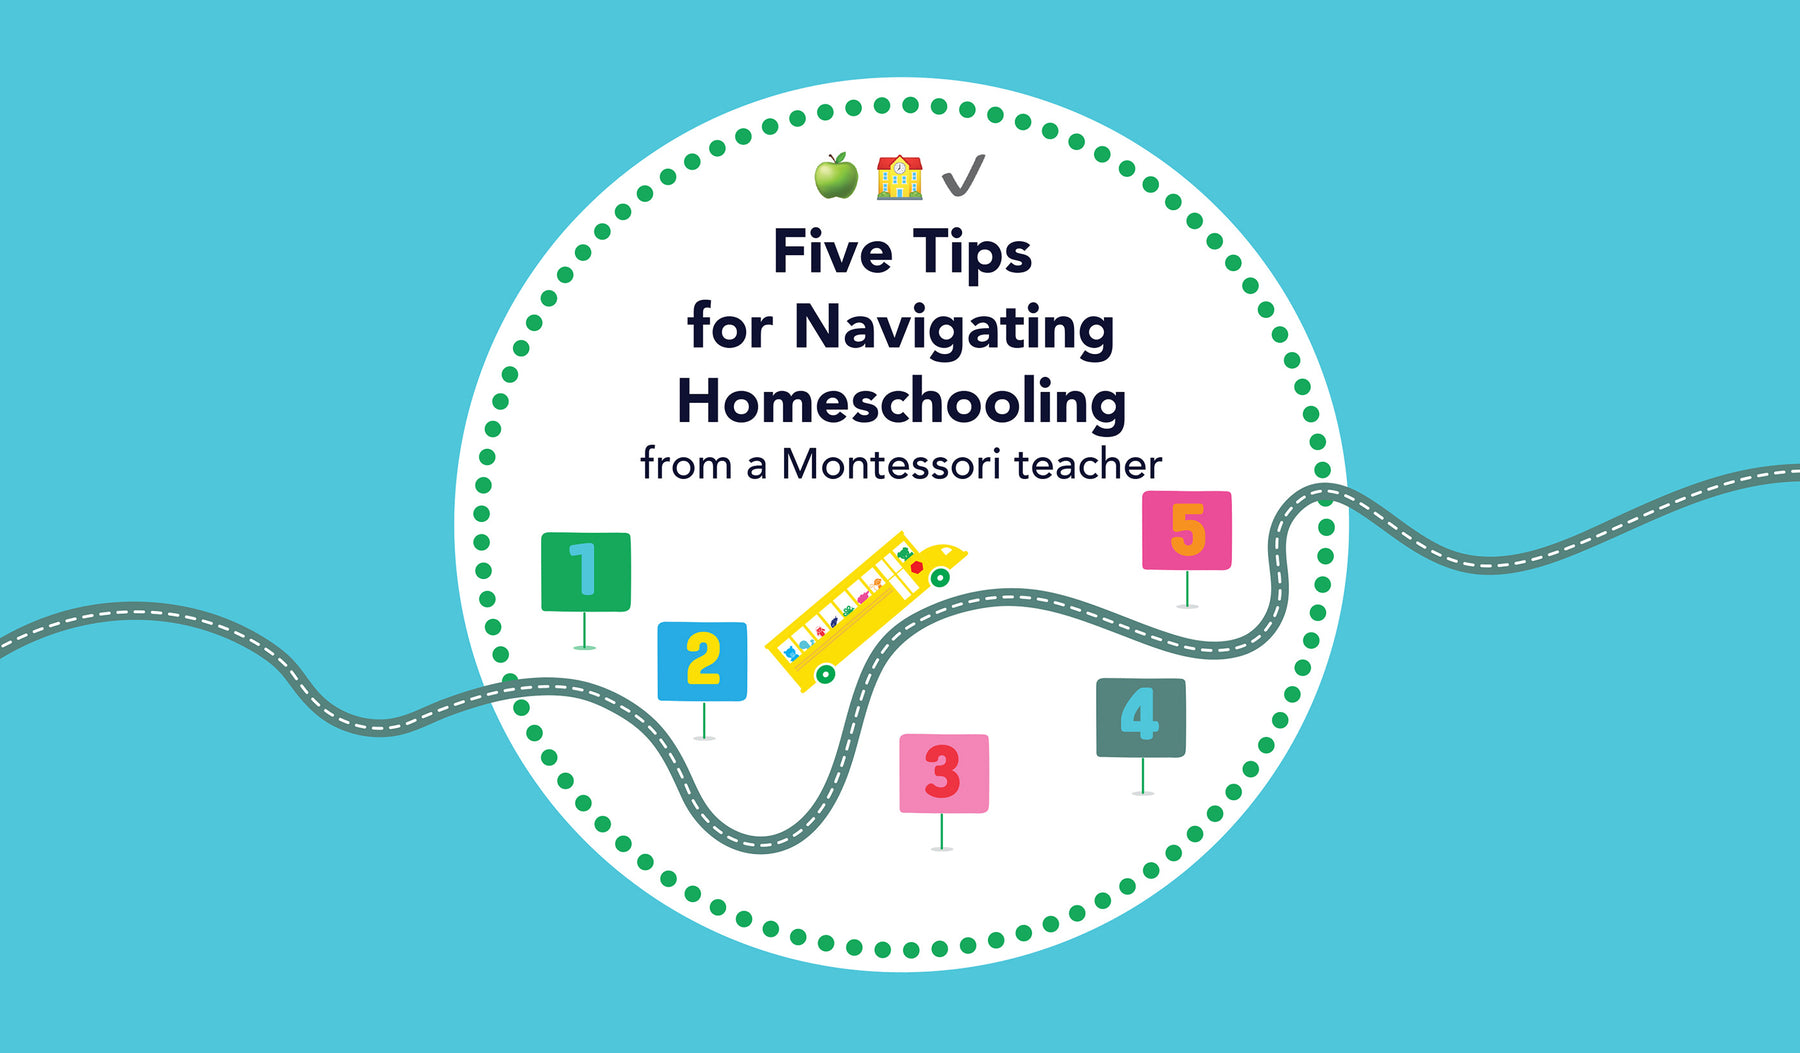 Five Tips from a Montessori Teacher for Navigating Homeschooling